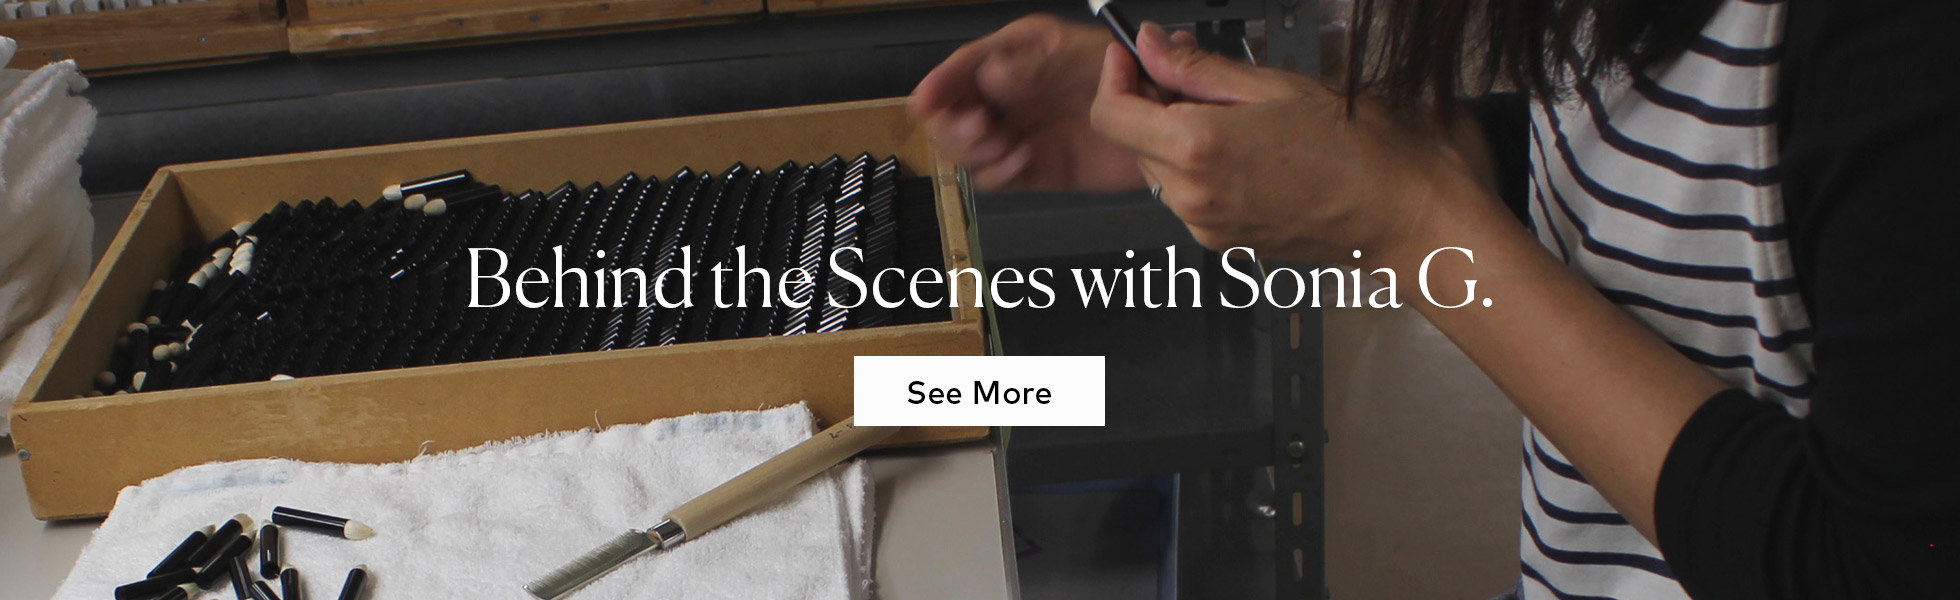 See Behind the Scenes with Sonia G.